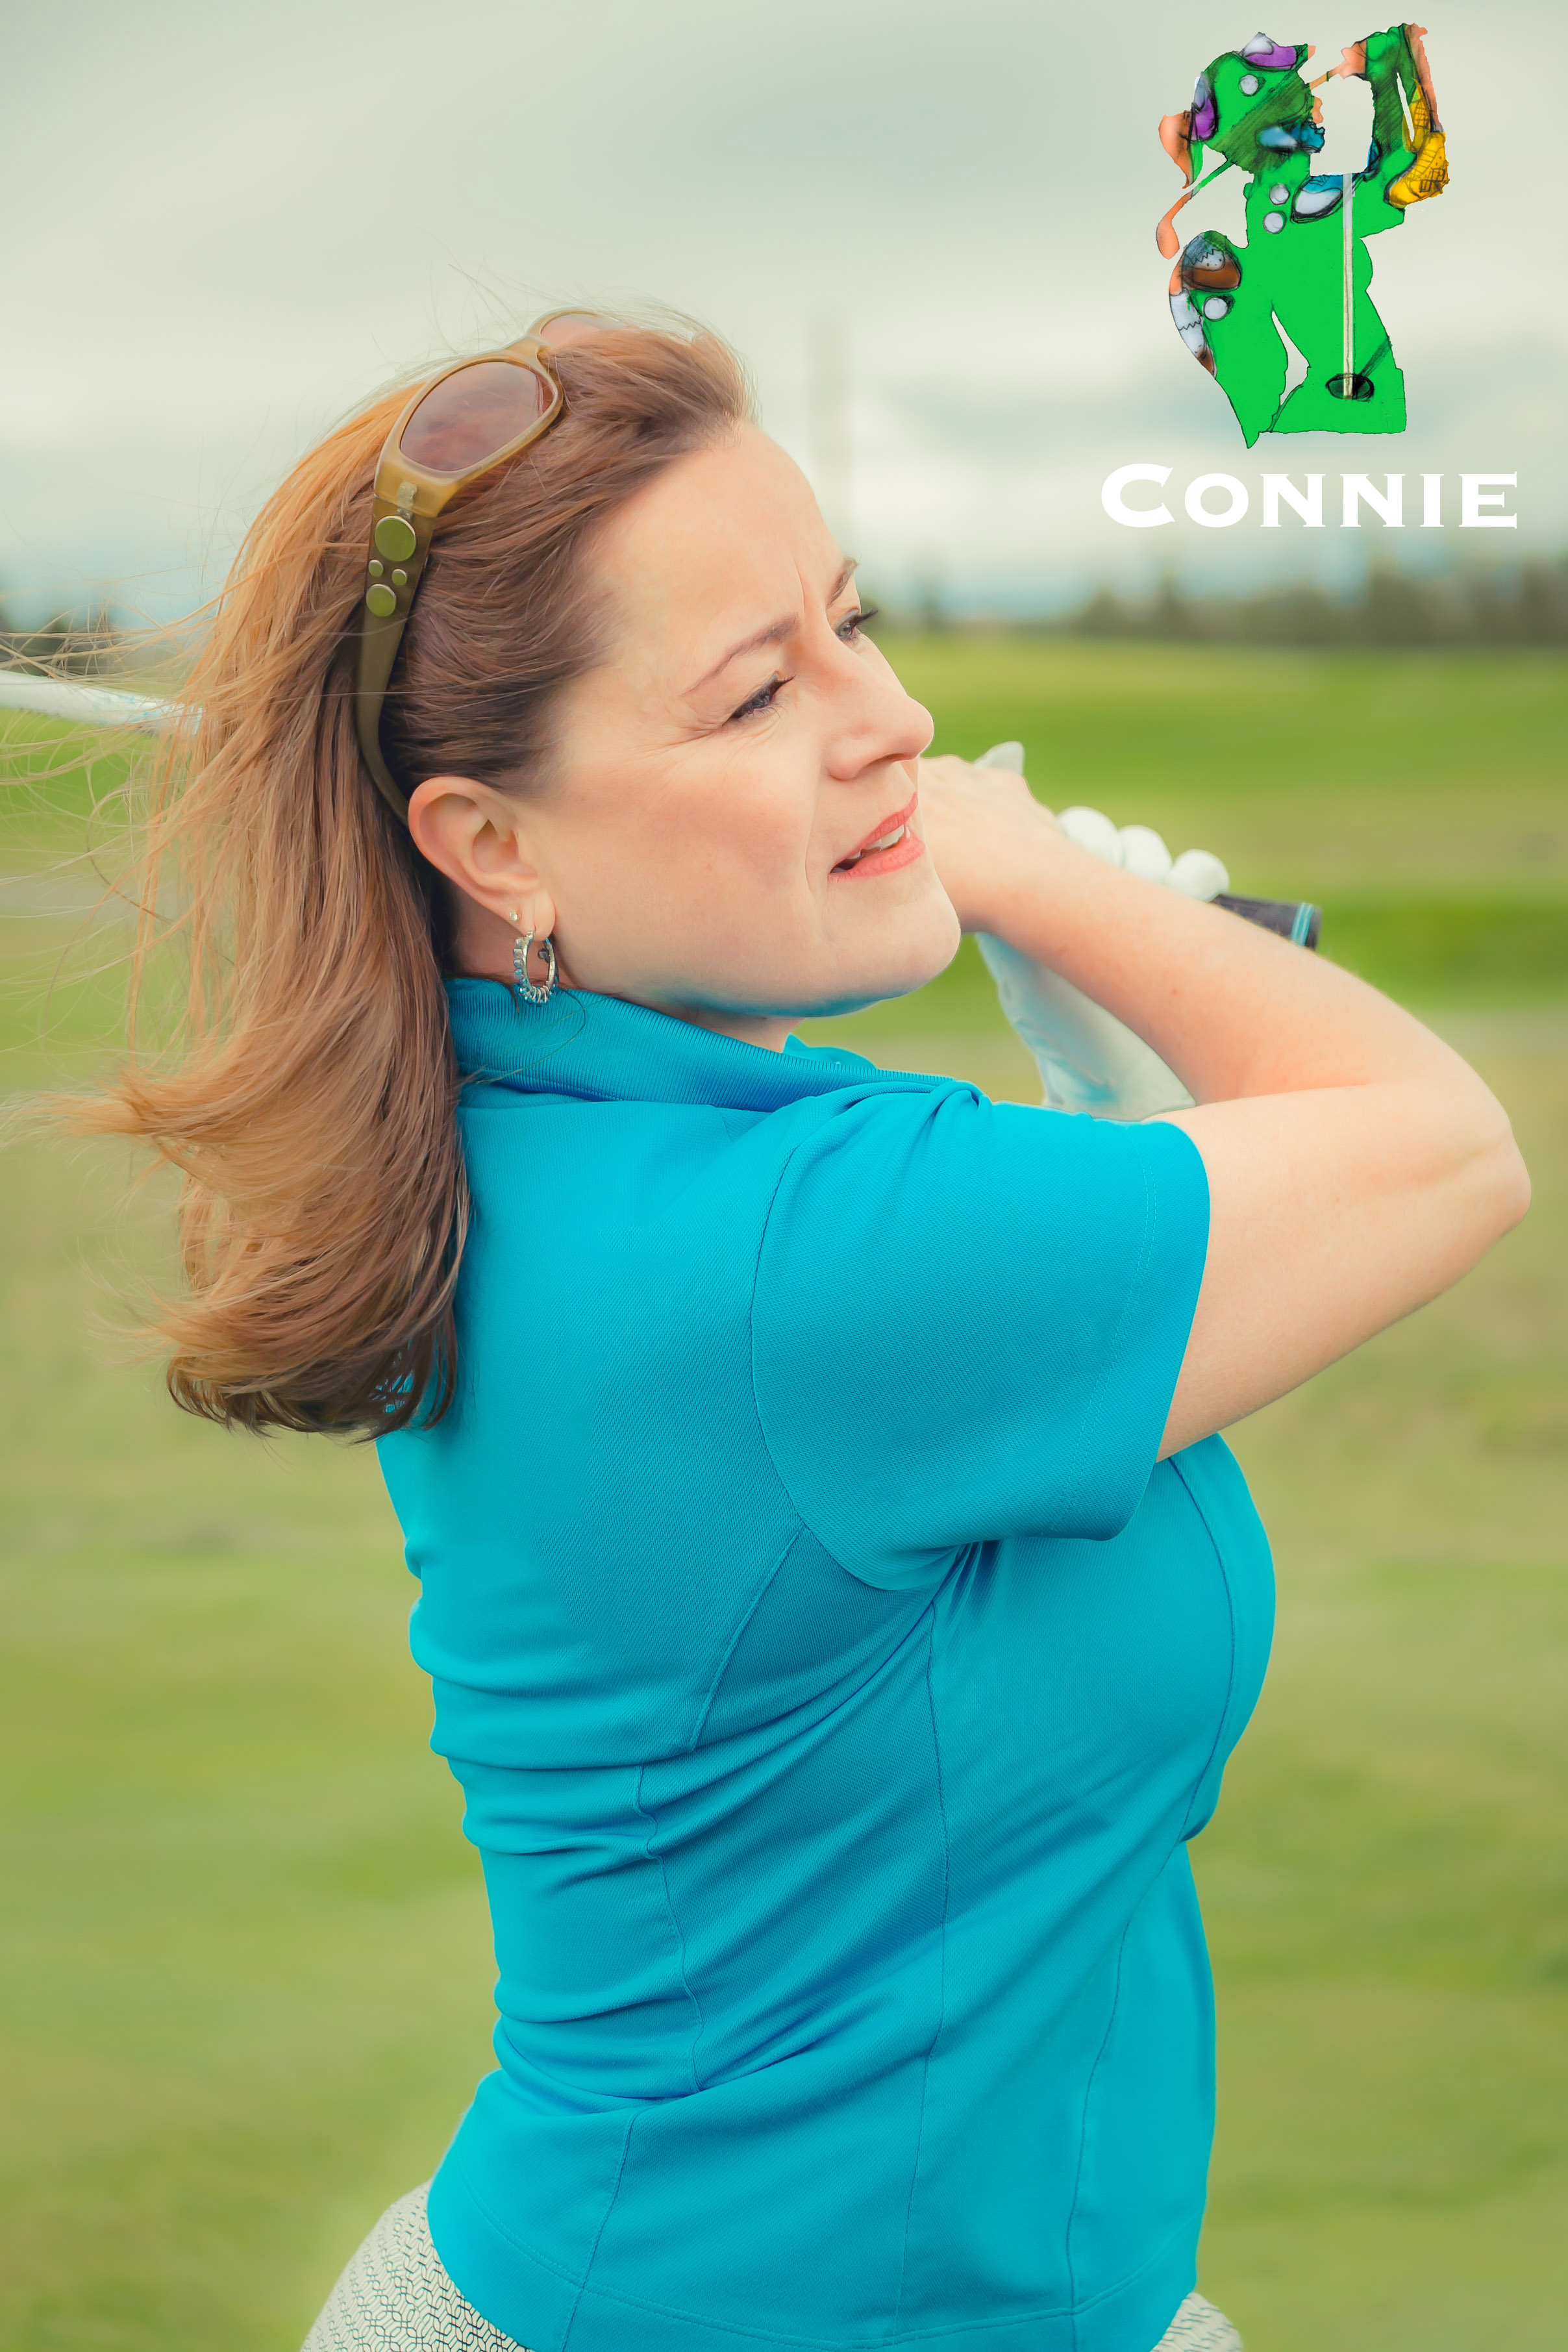 Callie McKinney Cabe as Connie in The Ladies Foursome